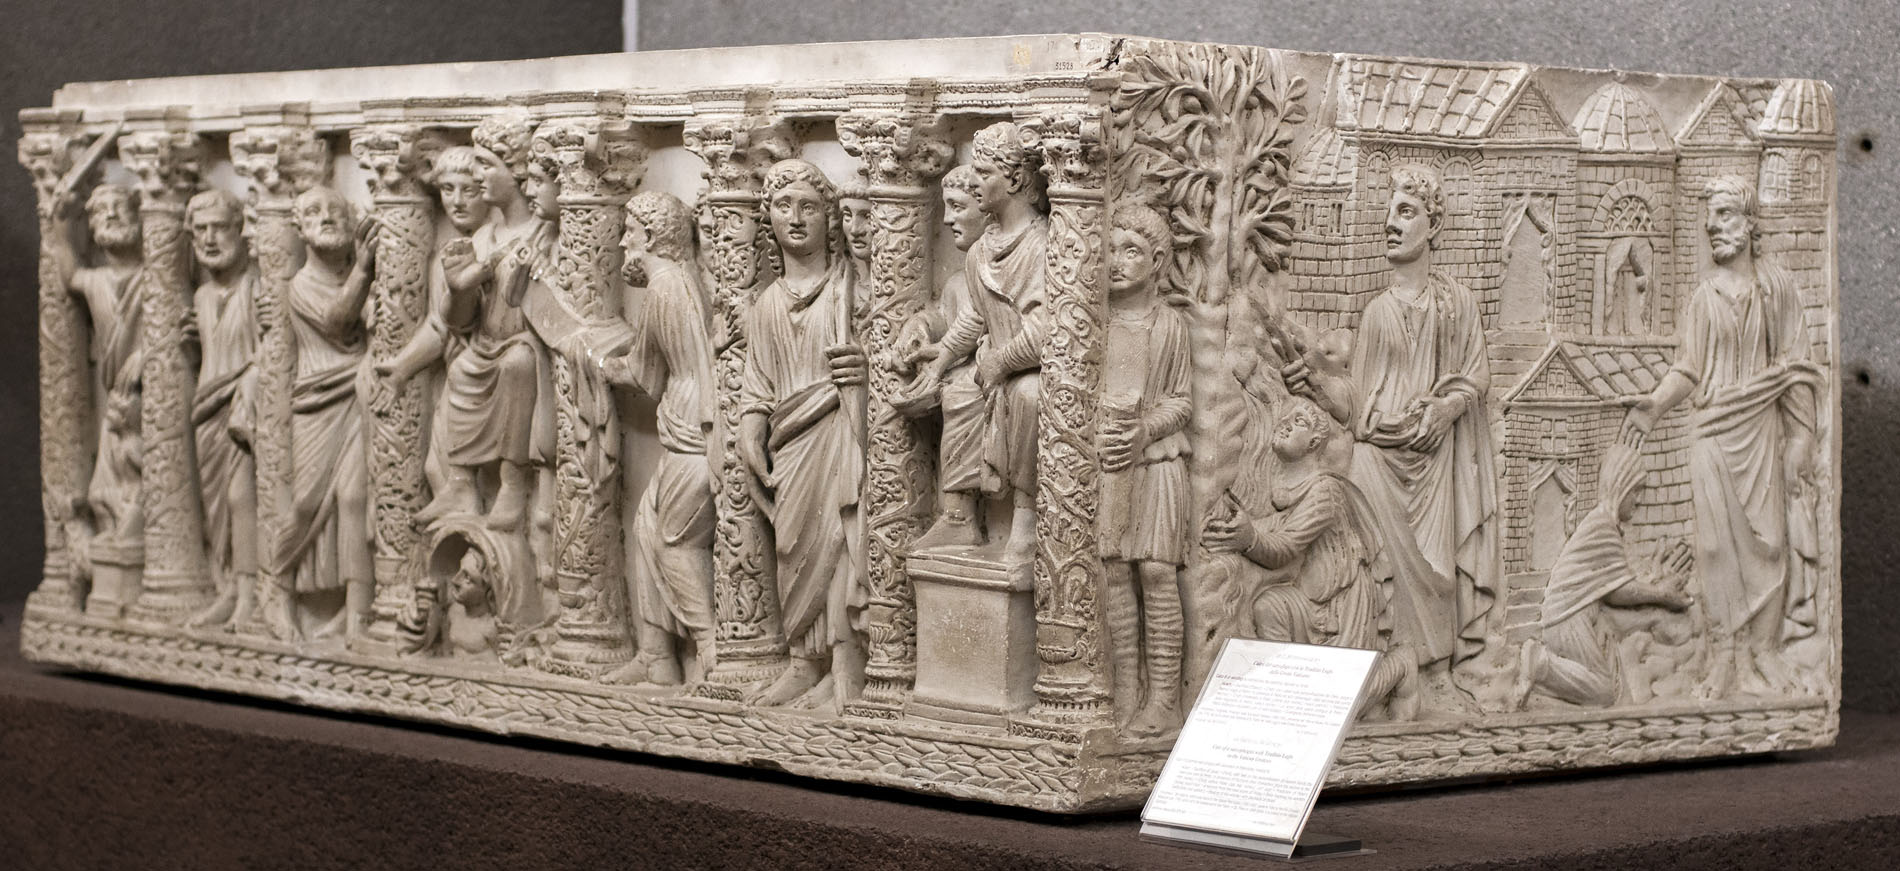 Cast of a sarcophagus with Traditio Legis in the Vatican Grottoes. Original (inv. 174): marble, c. 350—375 CE. Inv. No. 31528 (ex XXV). Rome, Vatican Museums, Pio-Christian Museum